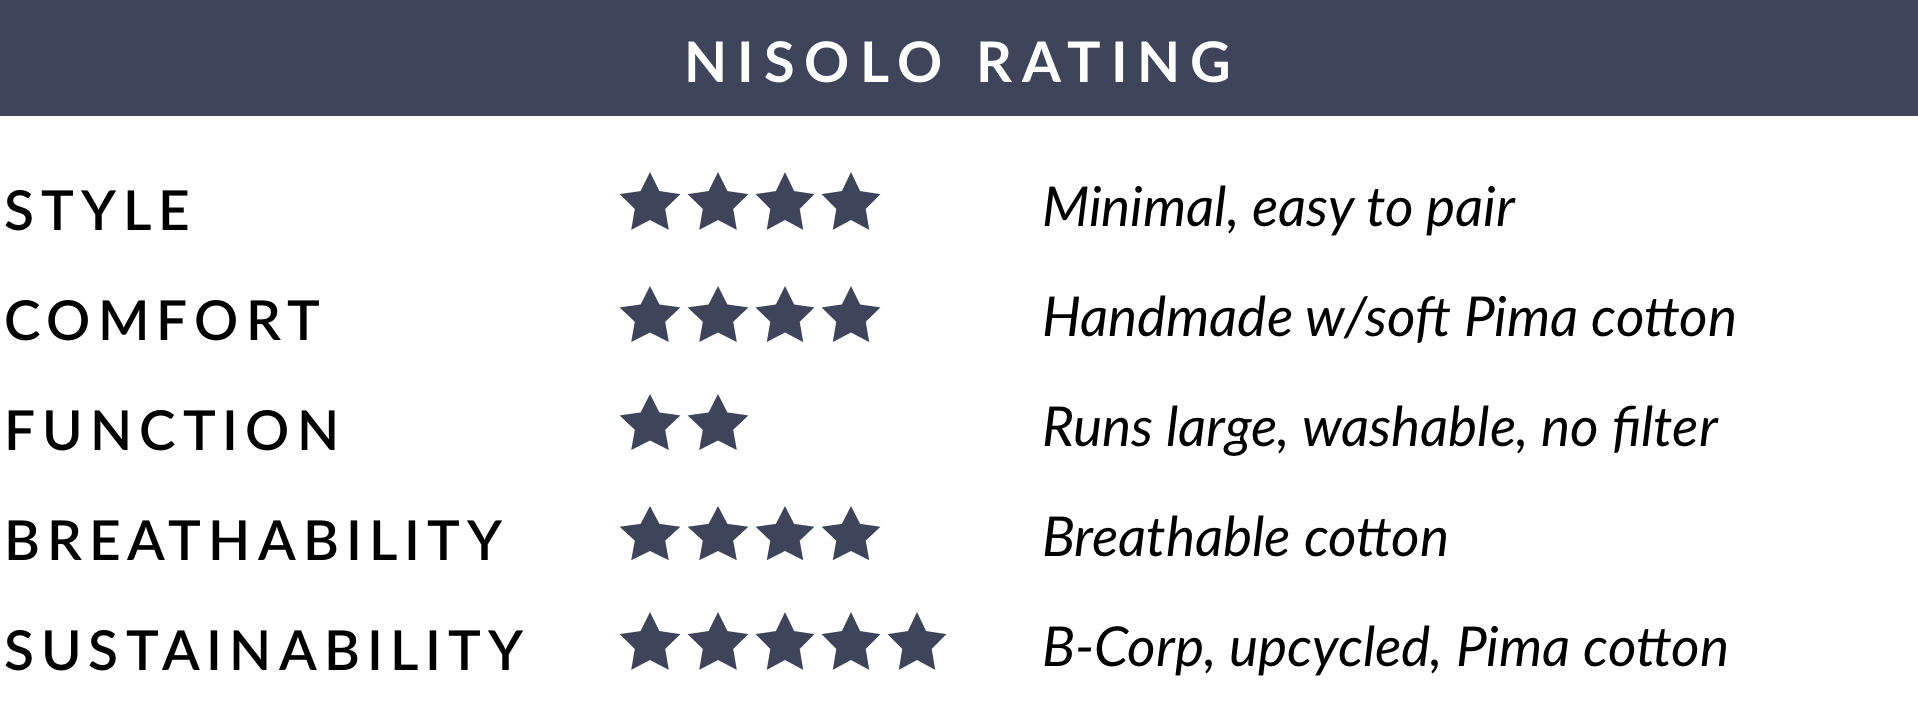 Nisolo Rating of KNOWN SUPPLY Upcycled Pima Cotton Face Covering - Heather Grey - Average of 4.2 out of 5 stars